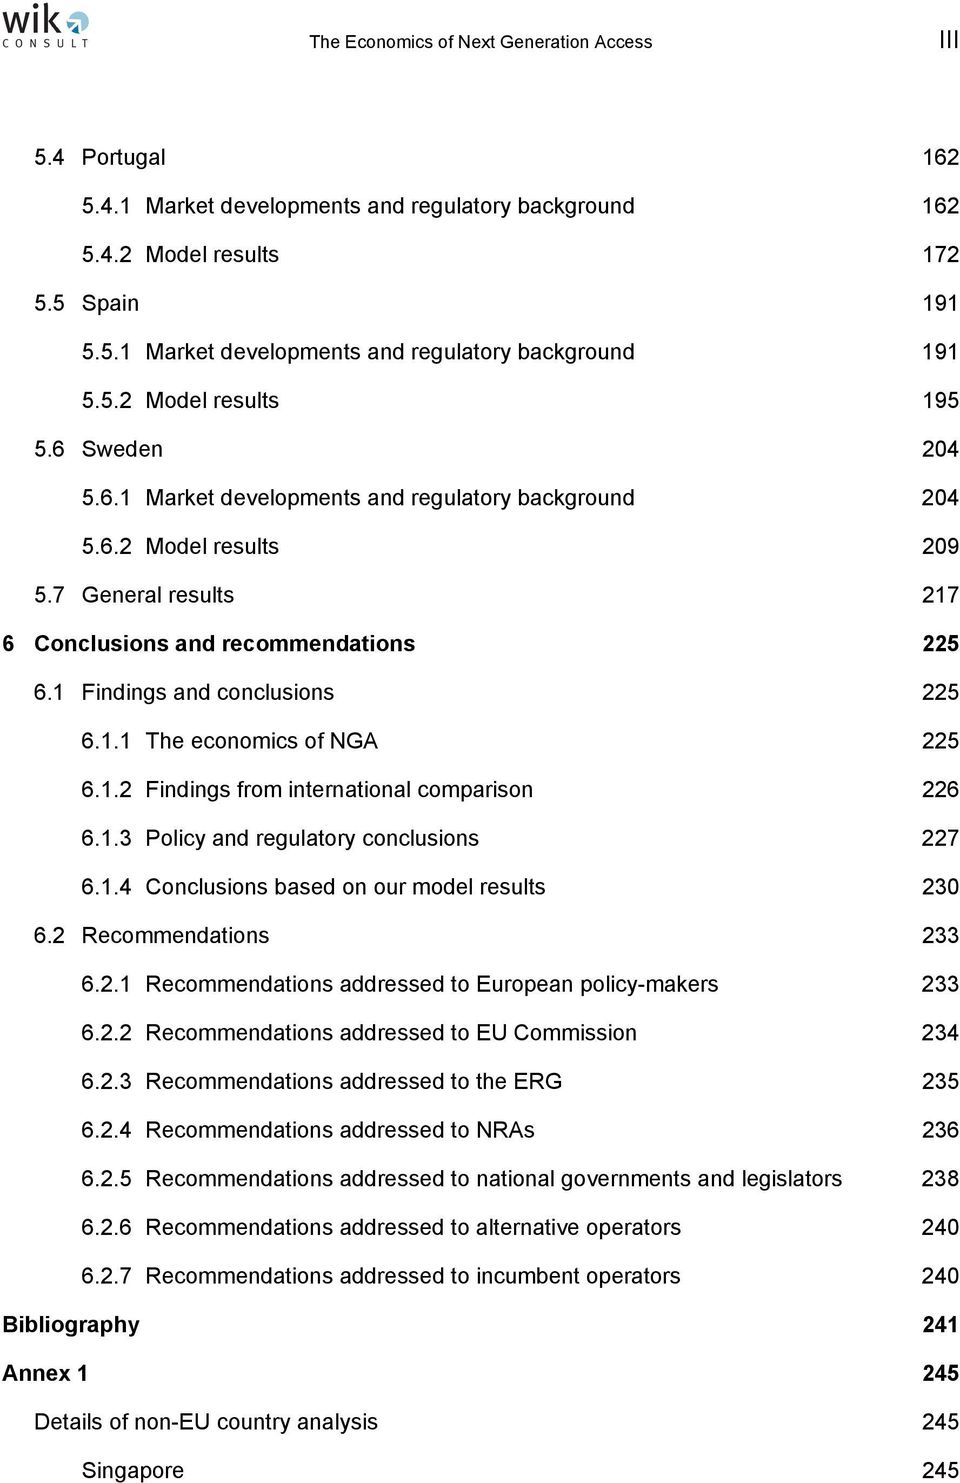 1 Findings and conclusions 225 6.1.1 The economics of NGA 225 6.1.2 Findings from international comparison 226 6.1.3 Policy and regulatory conclusions 227 6.1.4 Conclusions based on our model results 230 6.